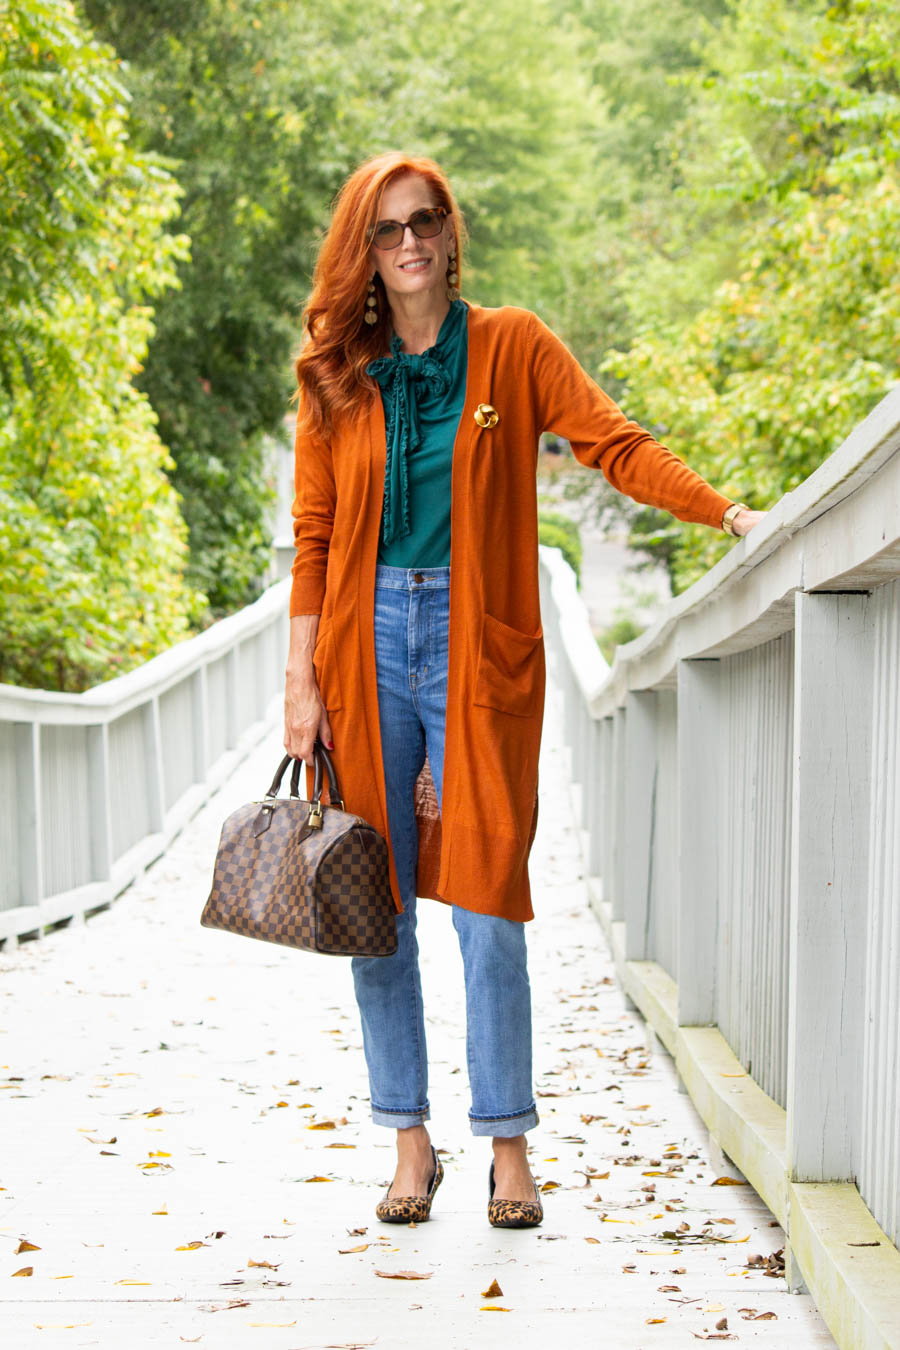 Pumpkin and teal outfit with jeans